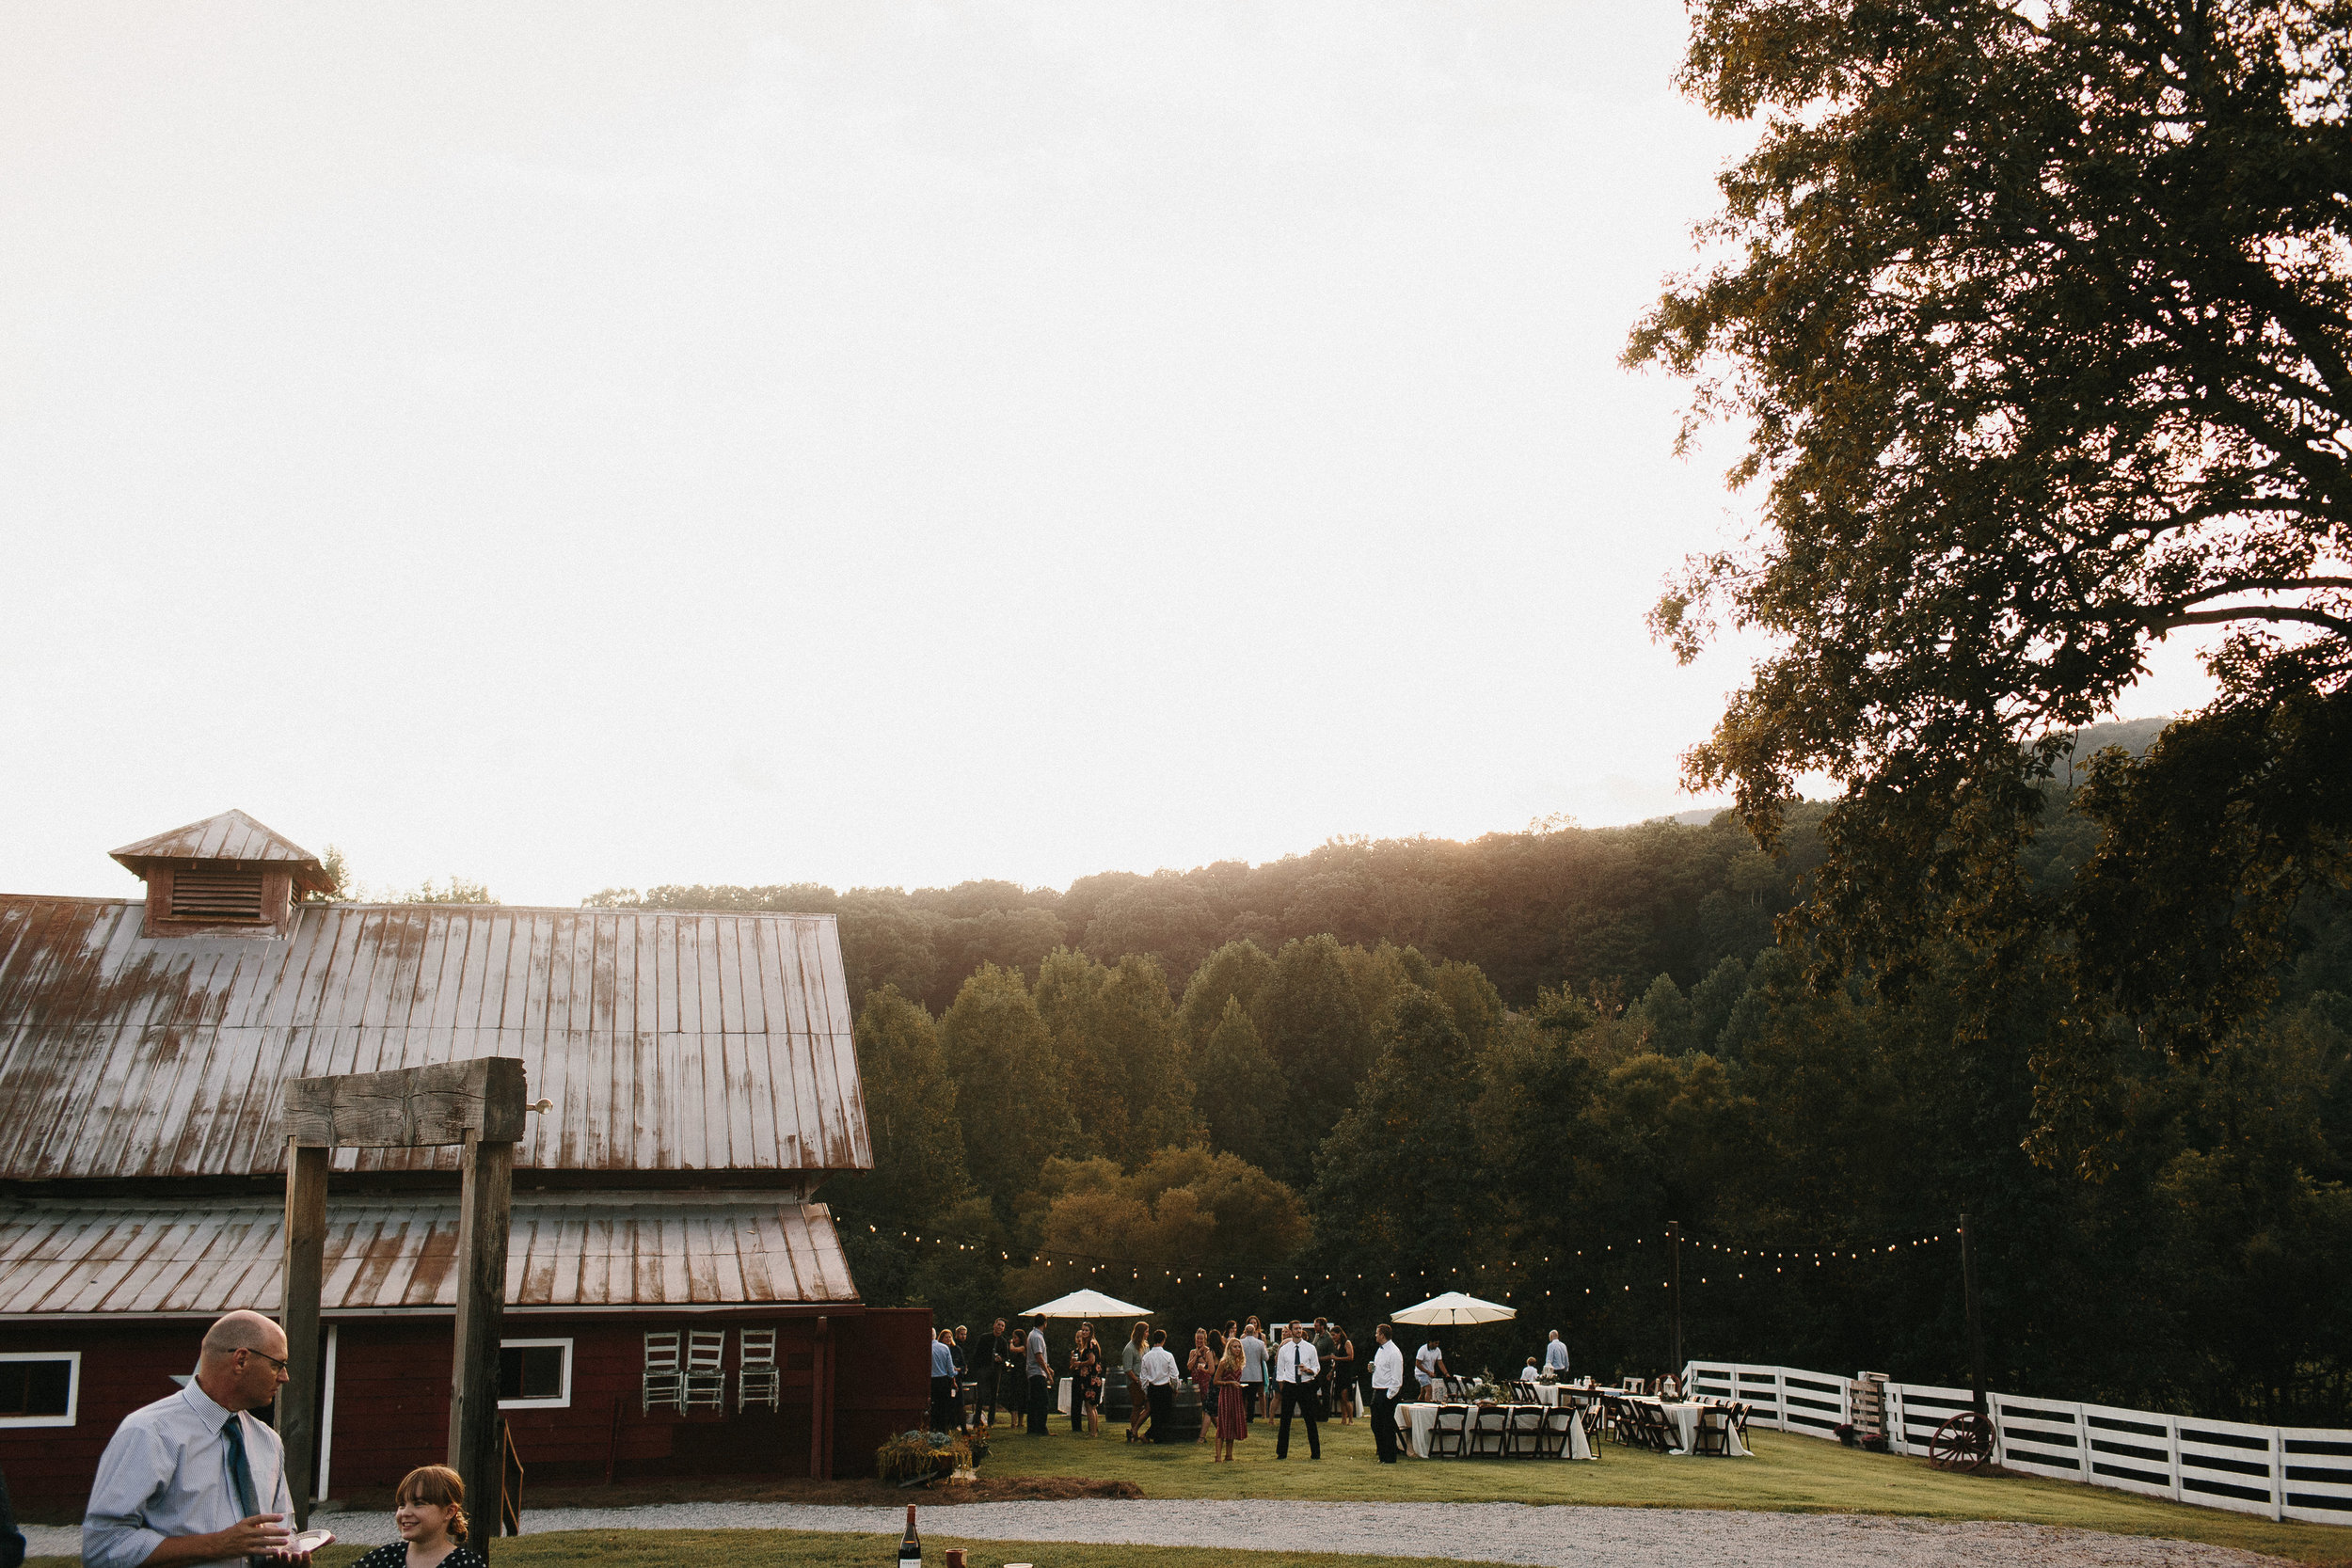 cleveland_georgia_mountain_laurel_farm_natural_classic_timeless_documentary_candid_wedding_emotional_photojournalism_river_west_1791.jpg